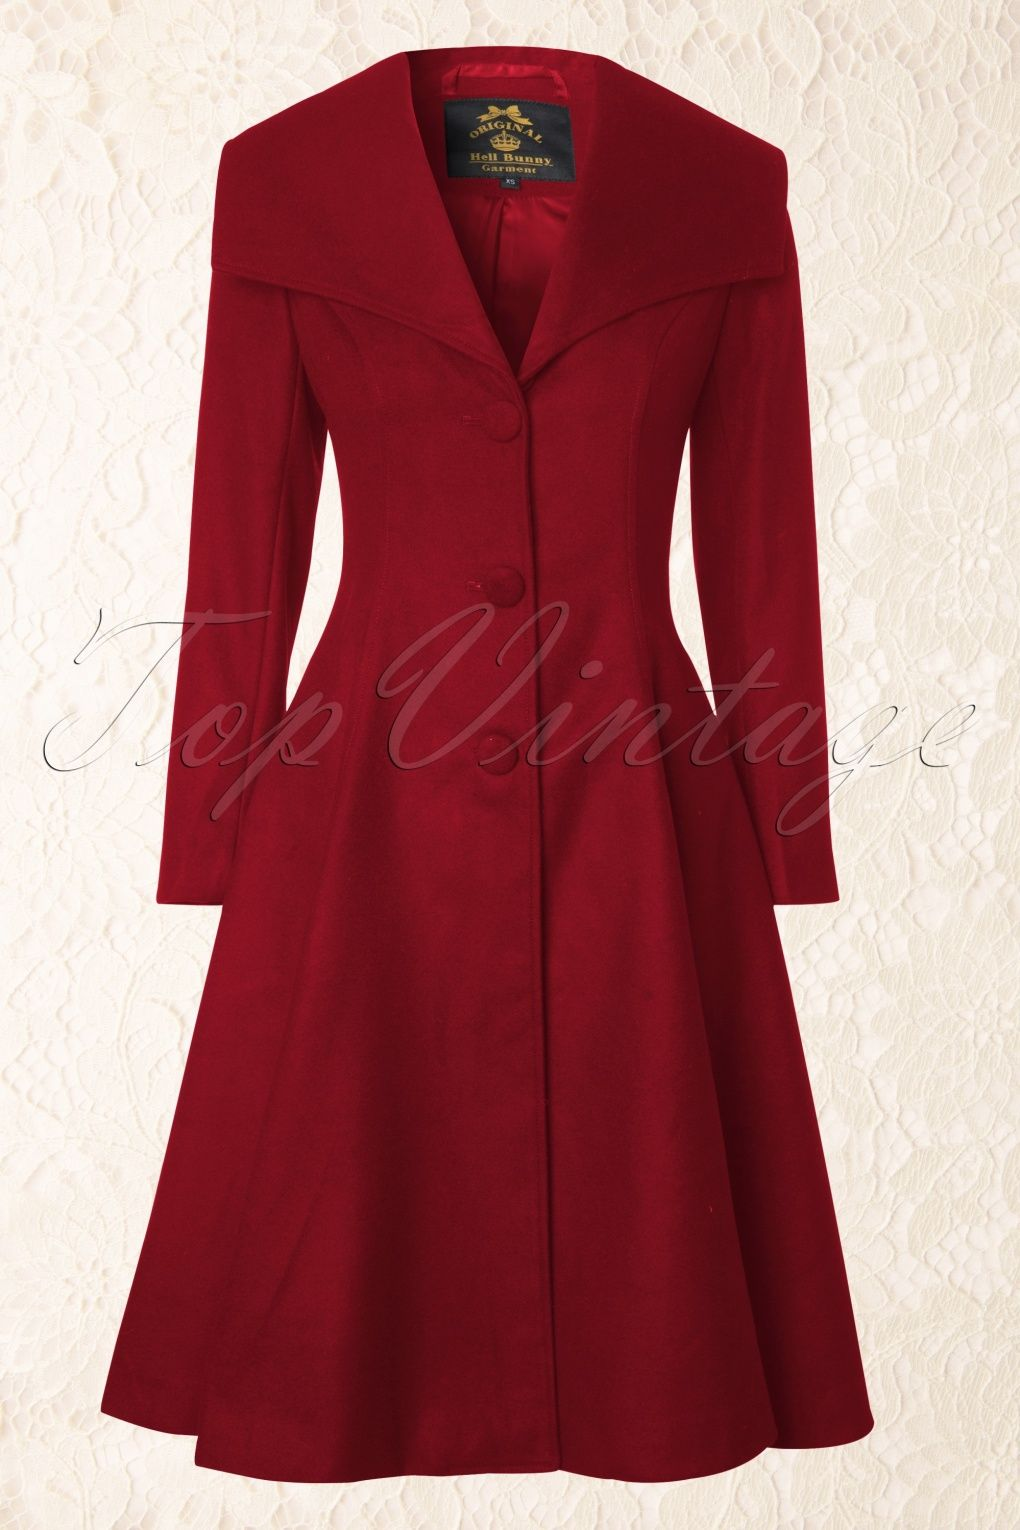 50s Coleen Swing Coat in Burgundy | Rote mäntel, Vertikal und Stiche